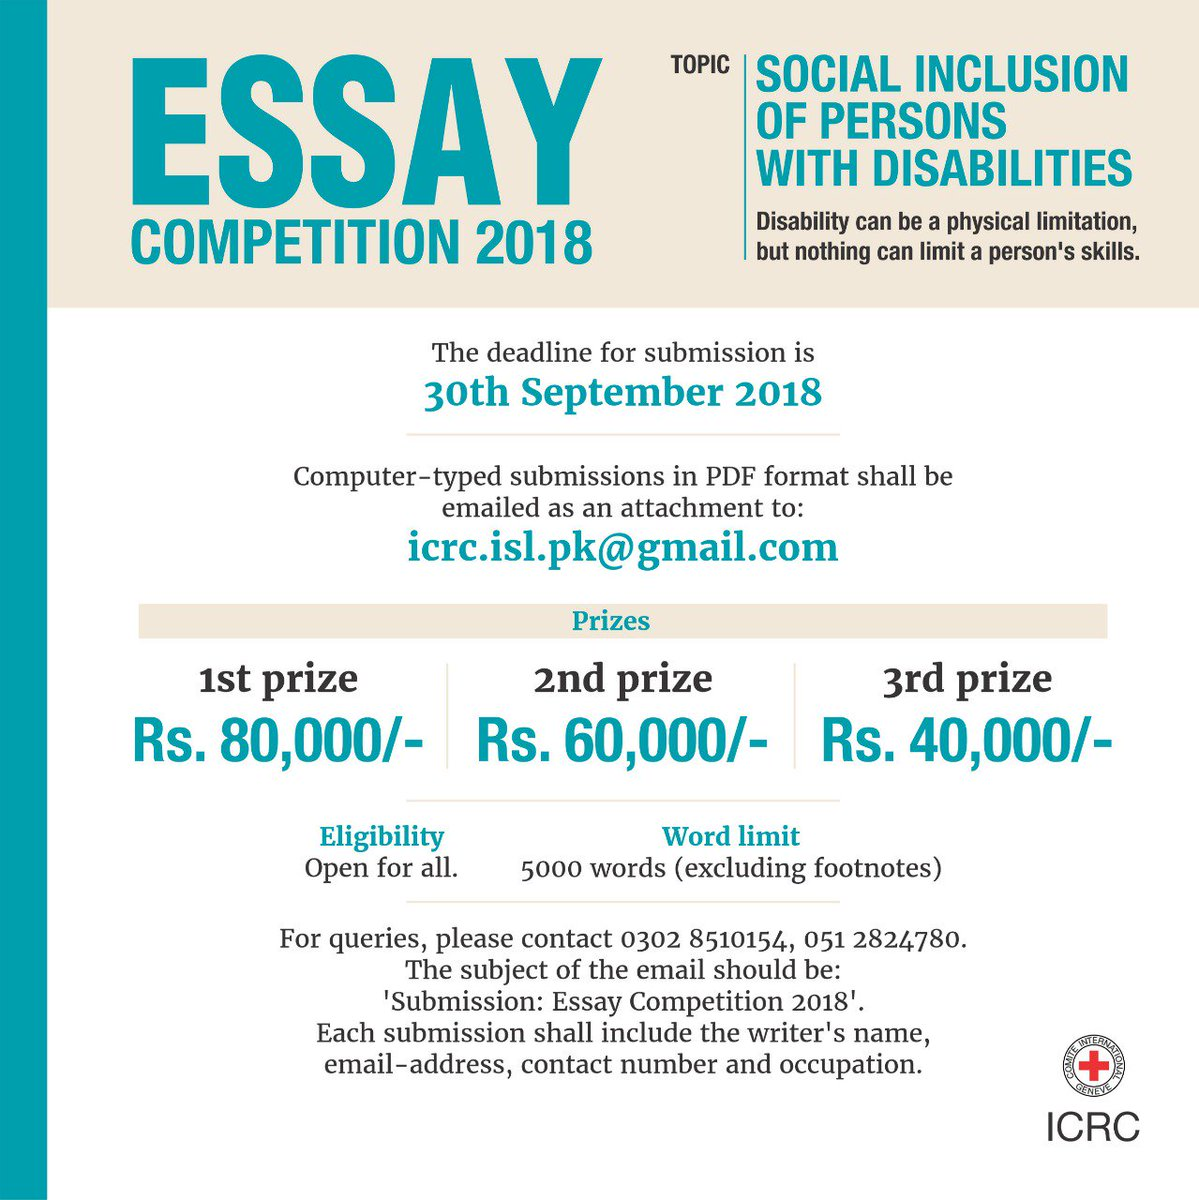 Help Writing Essays Participate In Icrc Essay Competition  To Get Your Opinion Reached To  Those Who Can Make The Difference We Can Help To Make Your Opinion Count To Kill A Mockingbird Racism Essay also Does Money Buy Happiness Essay Najum Abbasi On Twitter Want To Do Something For People With  Oxbridge Essays